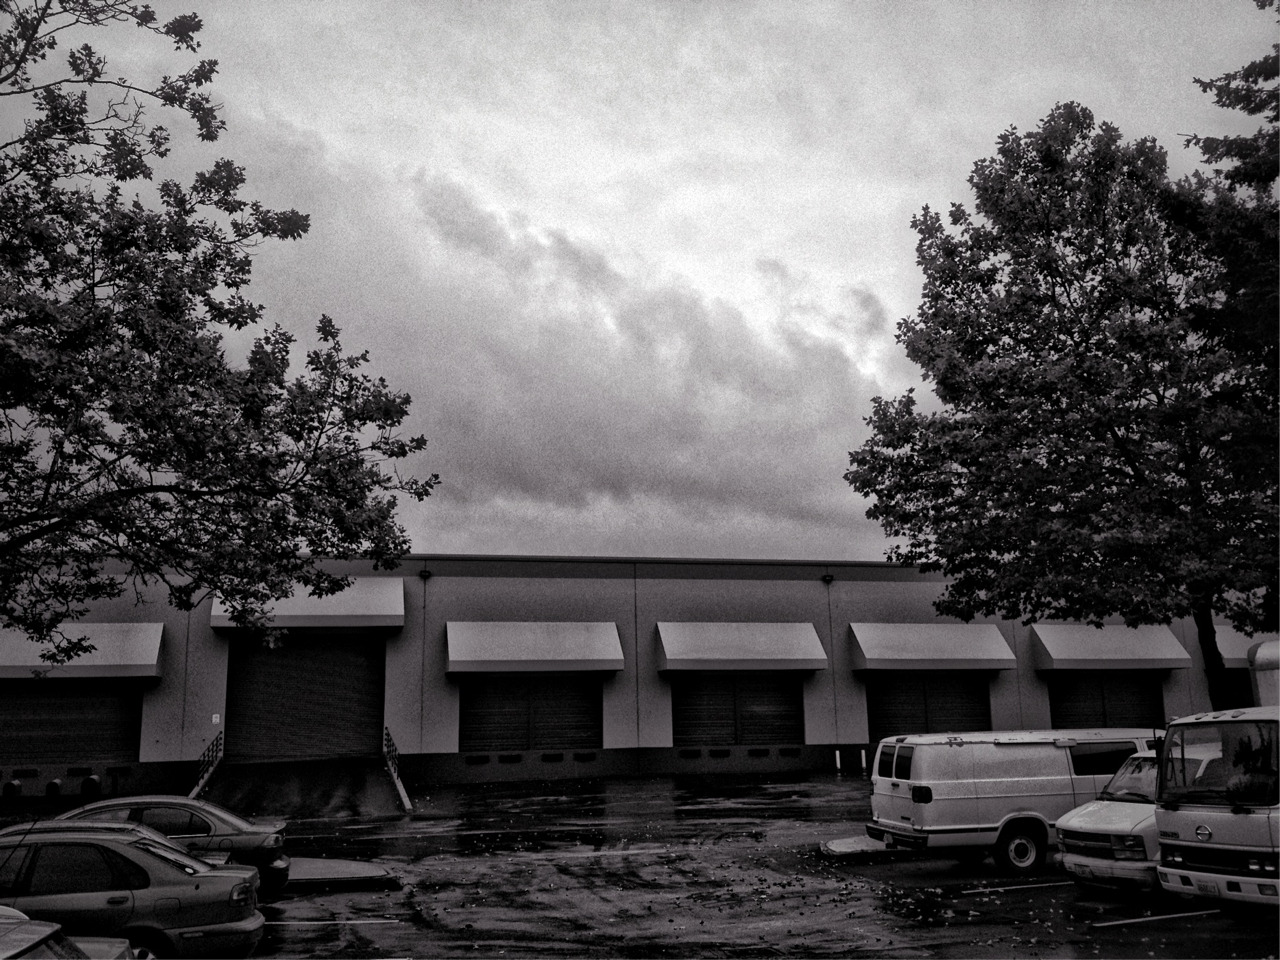 Storm Clouds Over The Warehouse #dramaticbw © 2012 Kent Kangley